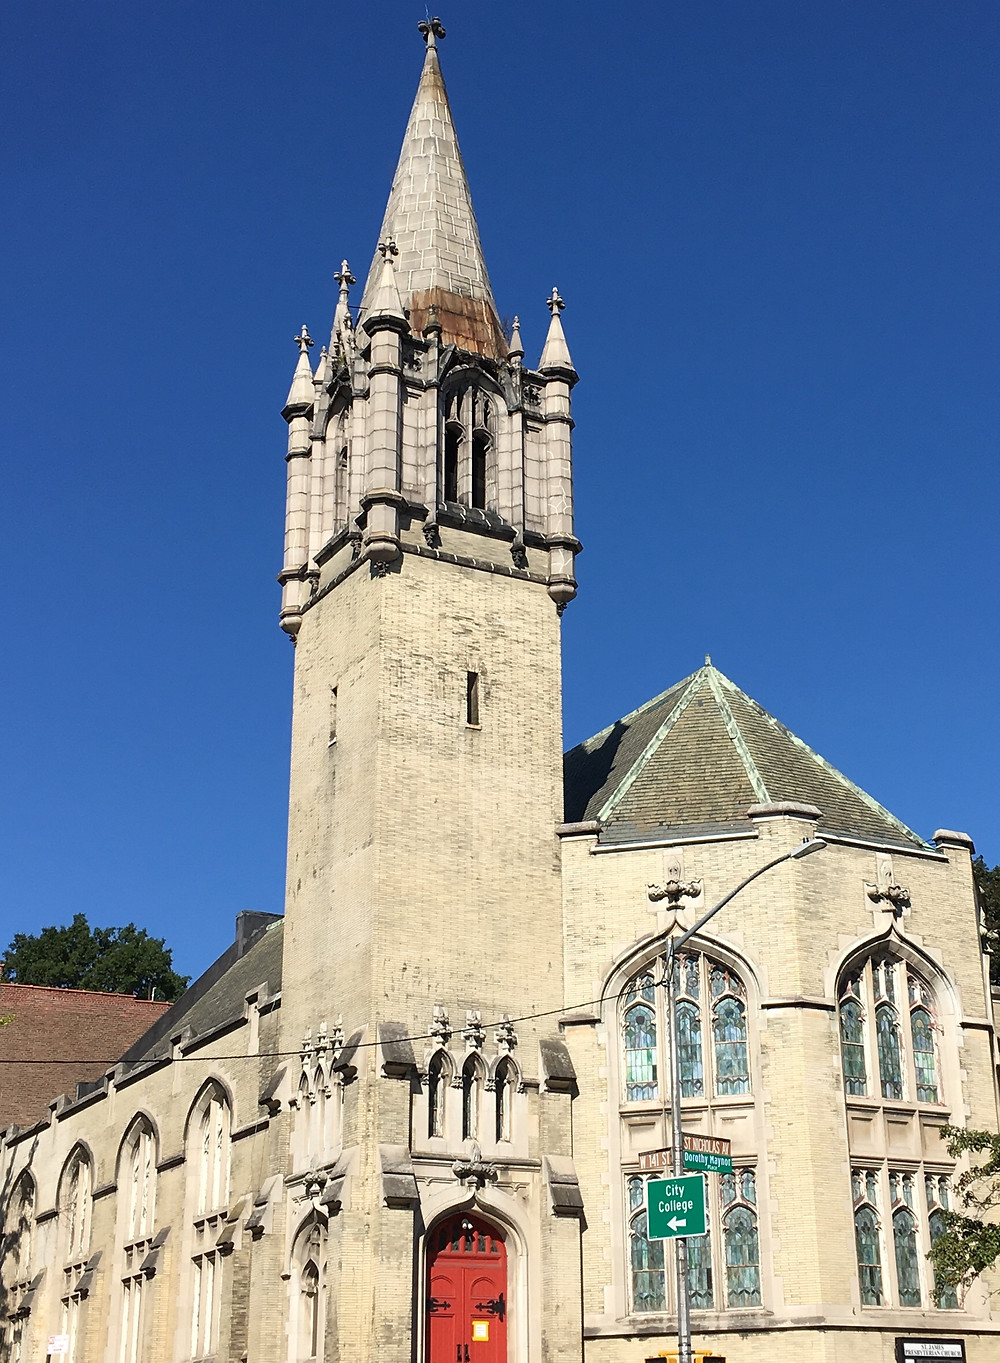 The tower of St. James Presbyterian Church looks straight out of Hogwarts